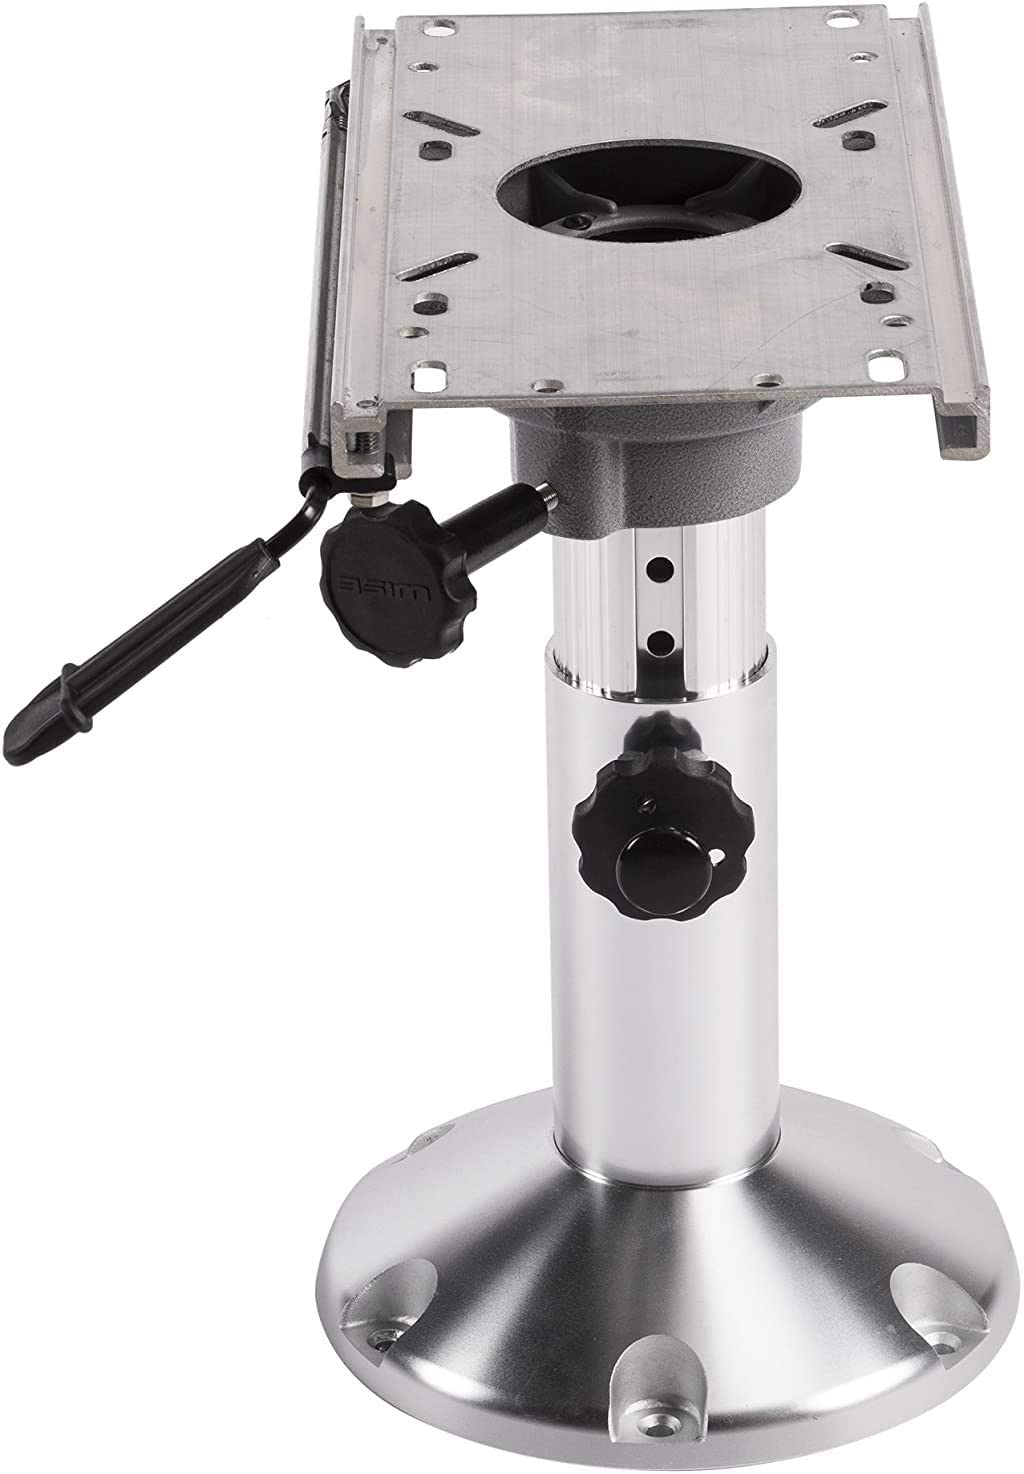 New product!! Wise 8WP21-374 Adjustable Pedestal with Silver Slide Award-winning store